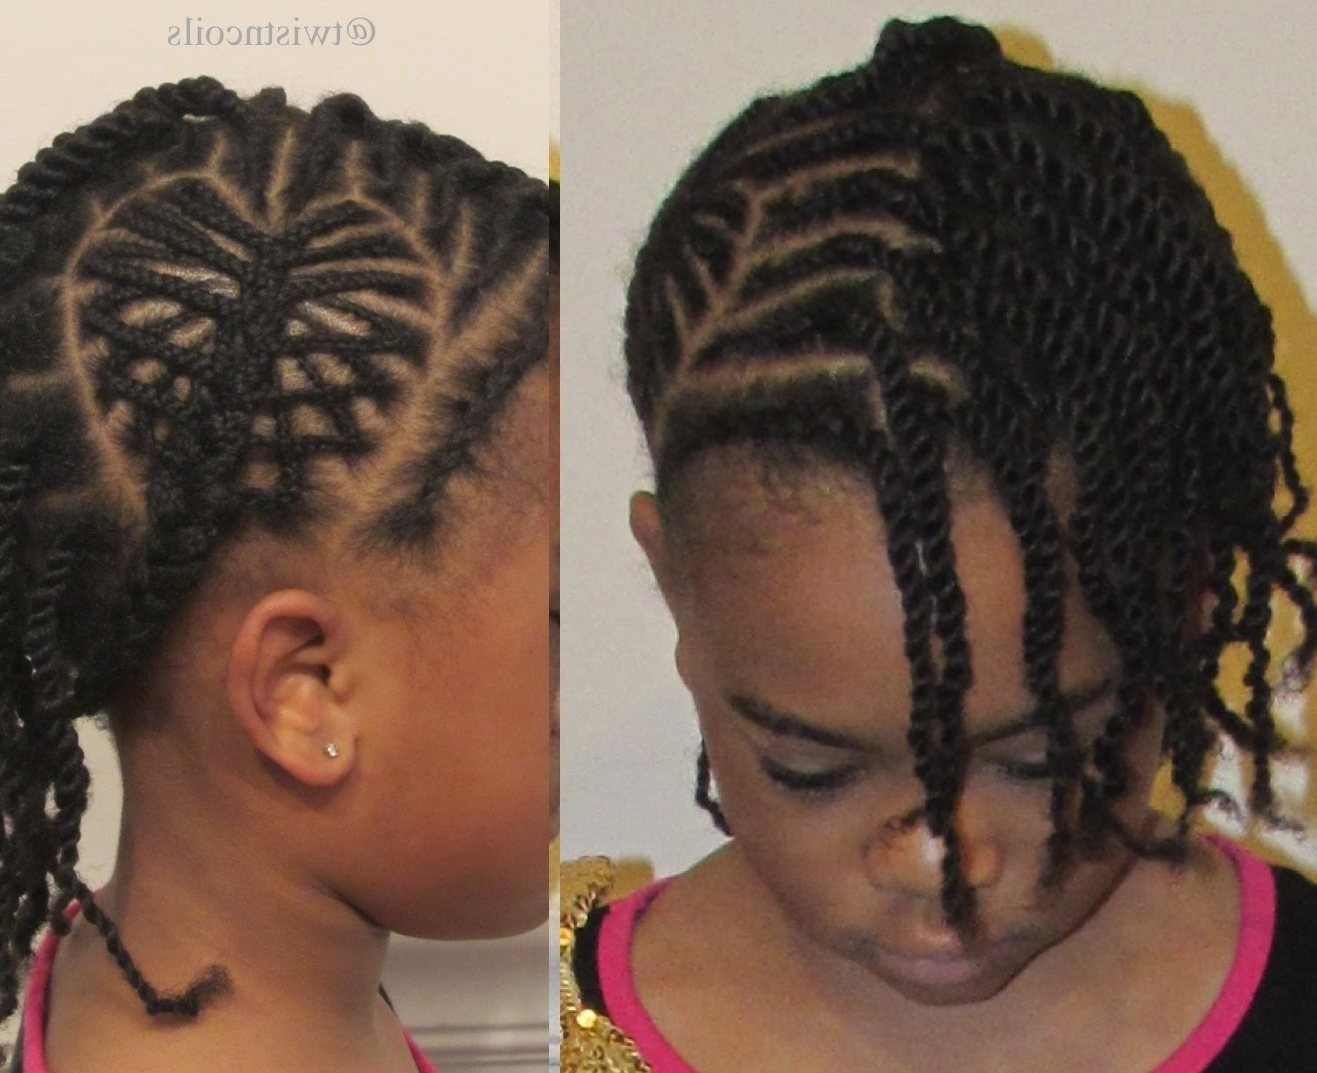 ♡ Tnc – 25 ♡ How To Do A 3 D Heart Braid ~ Fun Cute Hairstyles For With Most Popular Heart Braided Hairstyles (View 15 of 15)